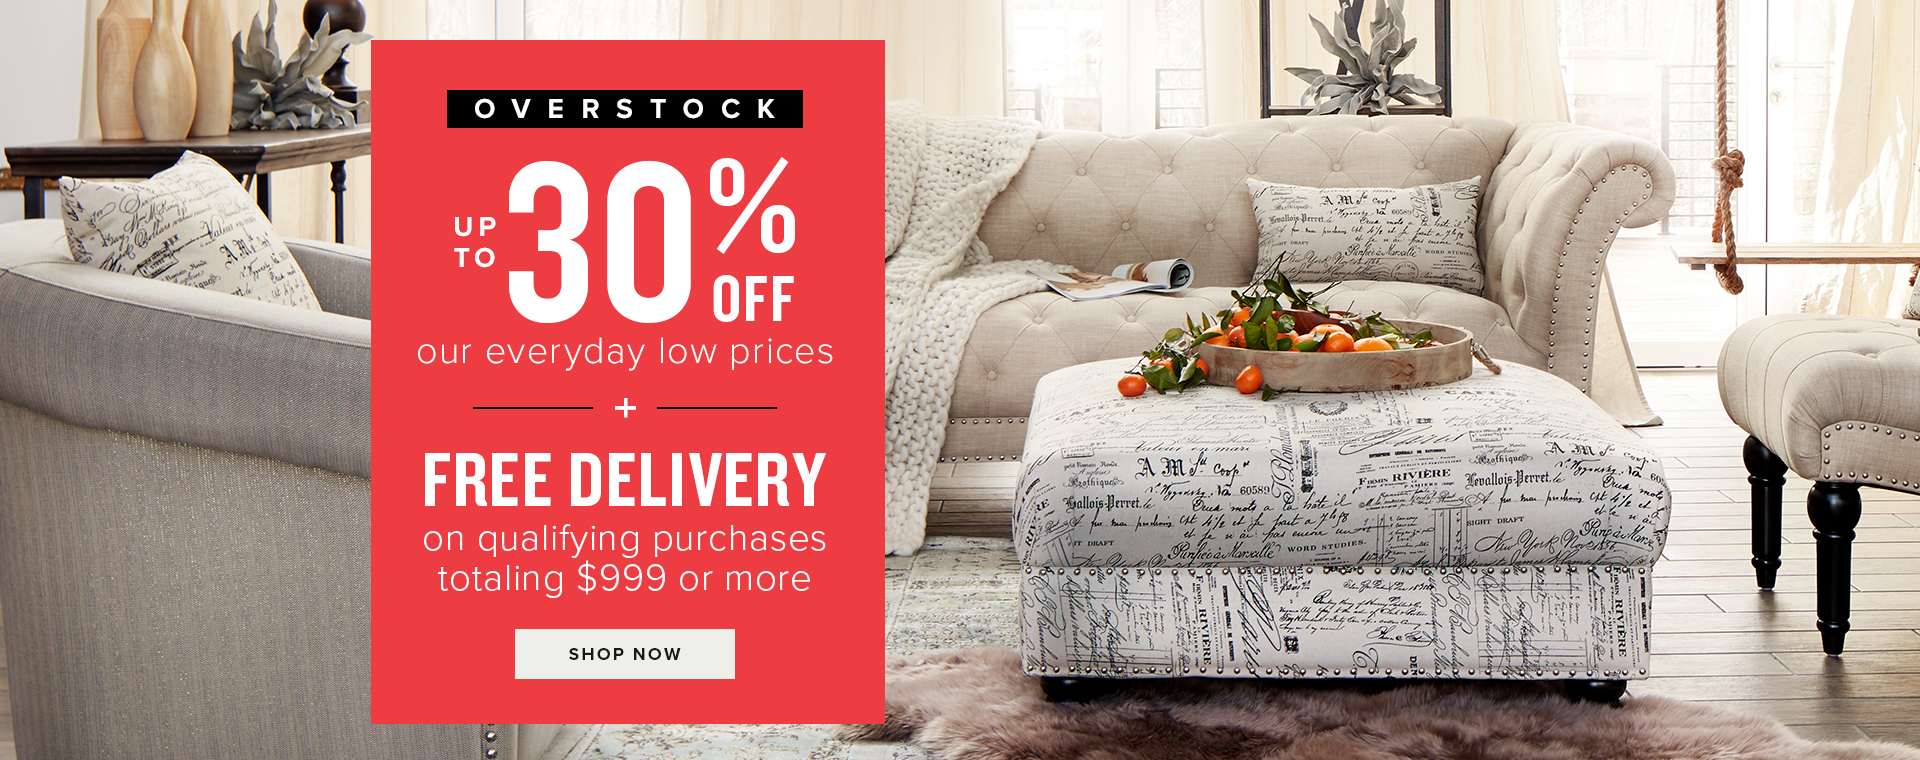 up to 30% off + free delivery on qualifying purchases of $999+ or more. shop now.